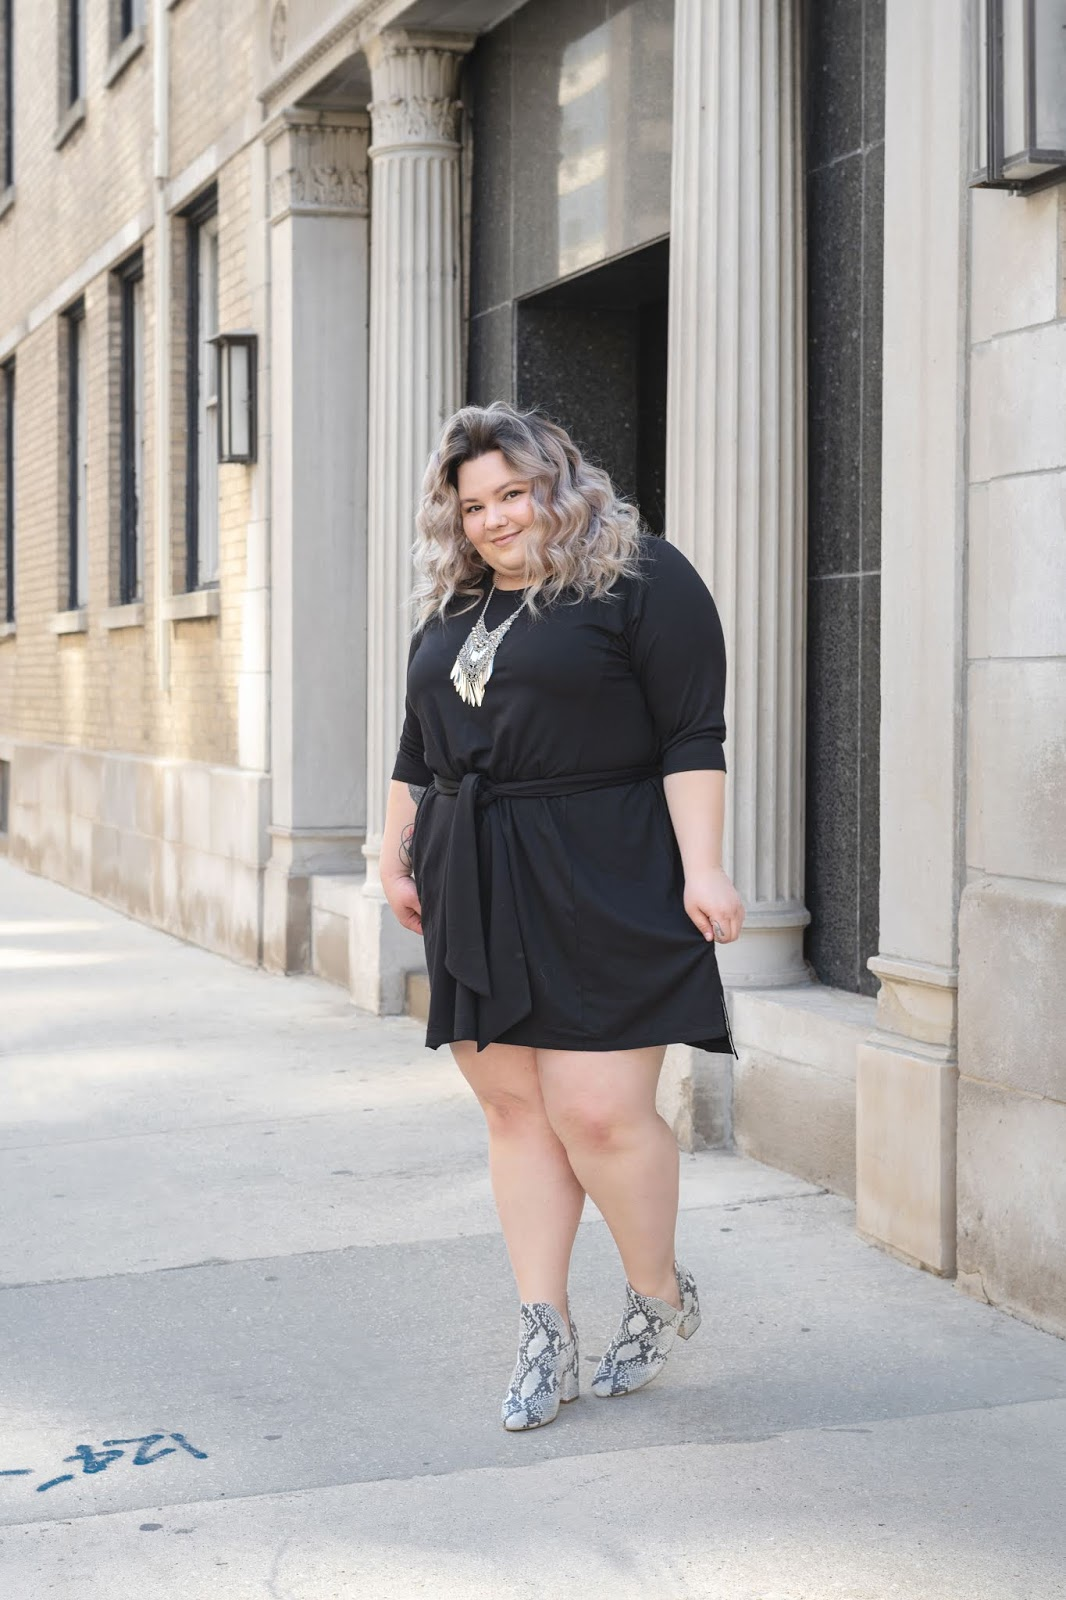 Chicago Plus Size Petite Fashion Blogger, YouTuber, and model Natalie Craig, of Natalie in the City, review's Ori's Signature French Terry Dress.